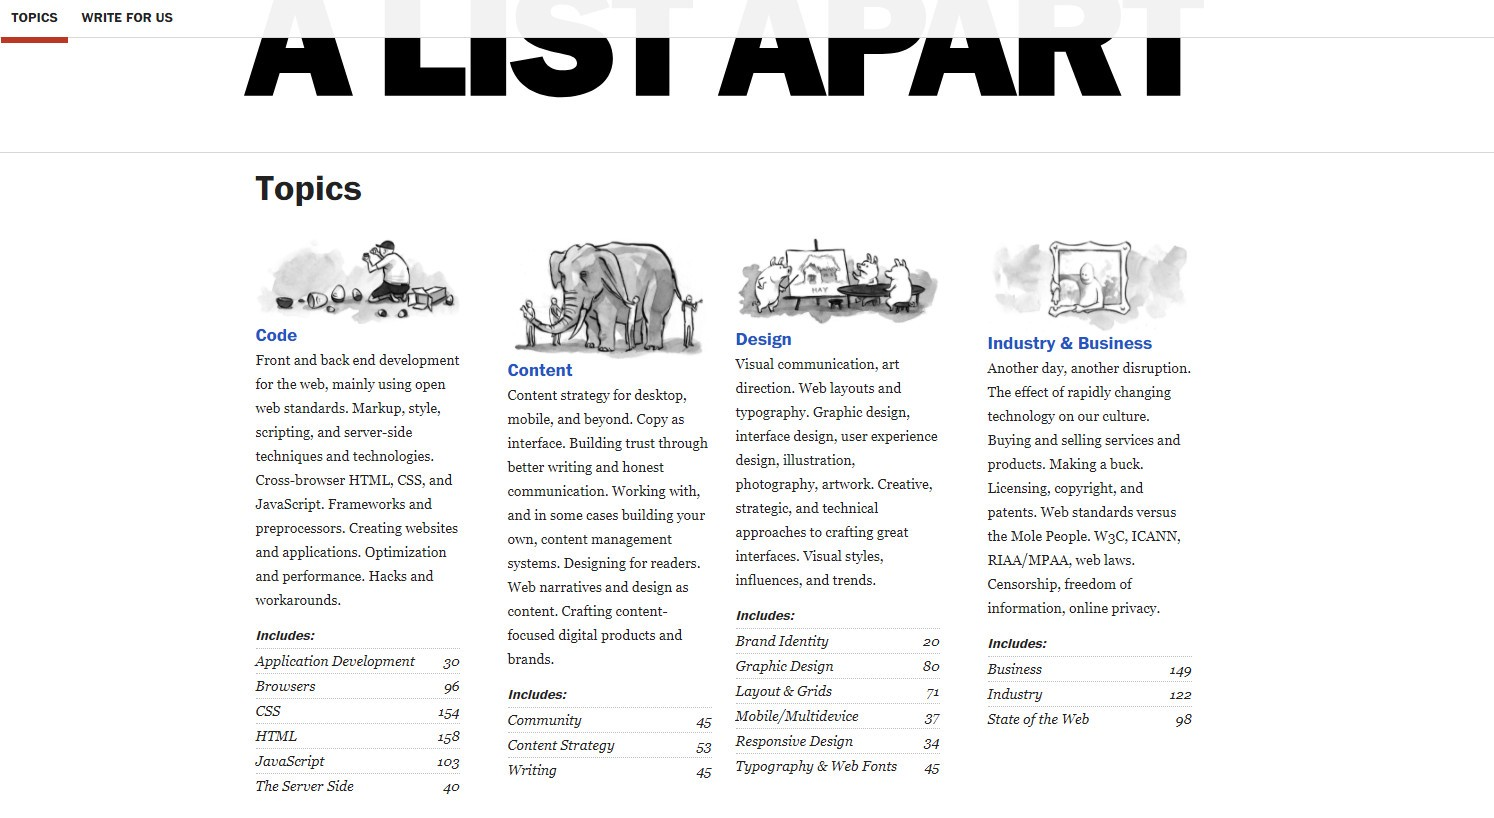 A List Apart Explores The Design Development And Meaning Of Web Content With Special Focus On Standards Best Practices